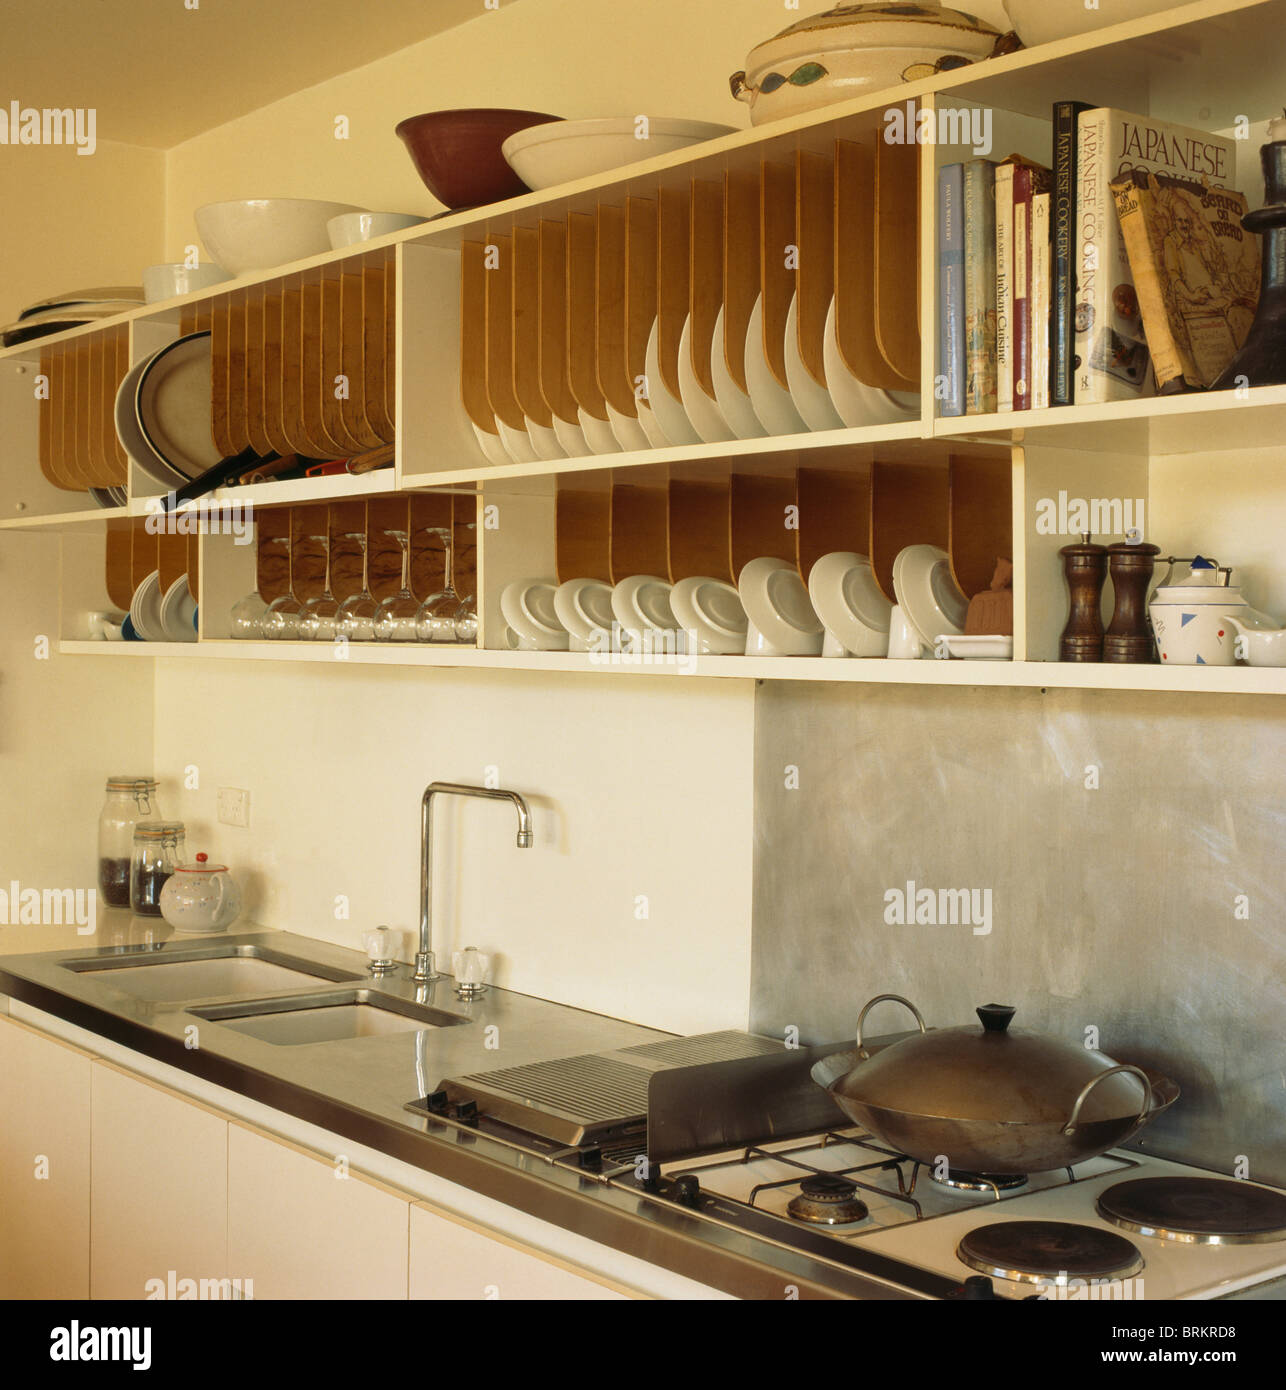 Modern Kitchen Plates: Fitted Wooden Plate Racks In Shelving Above Sink And Gas